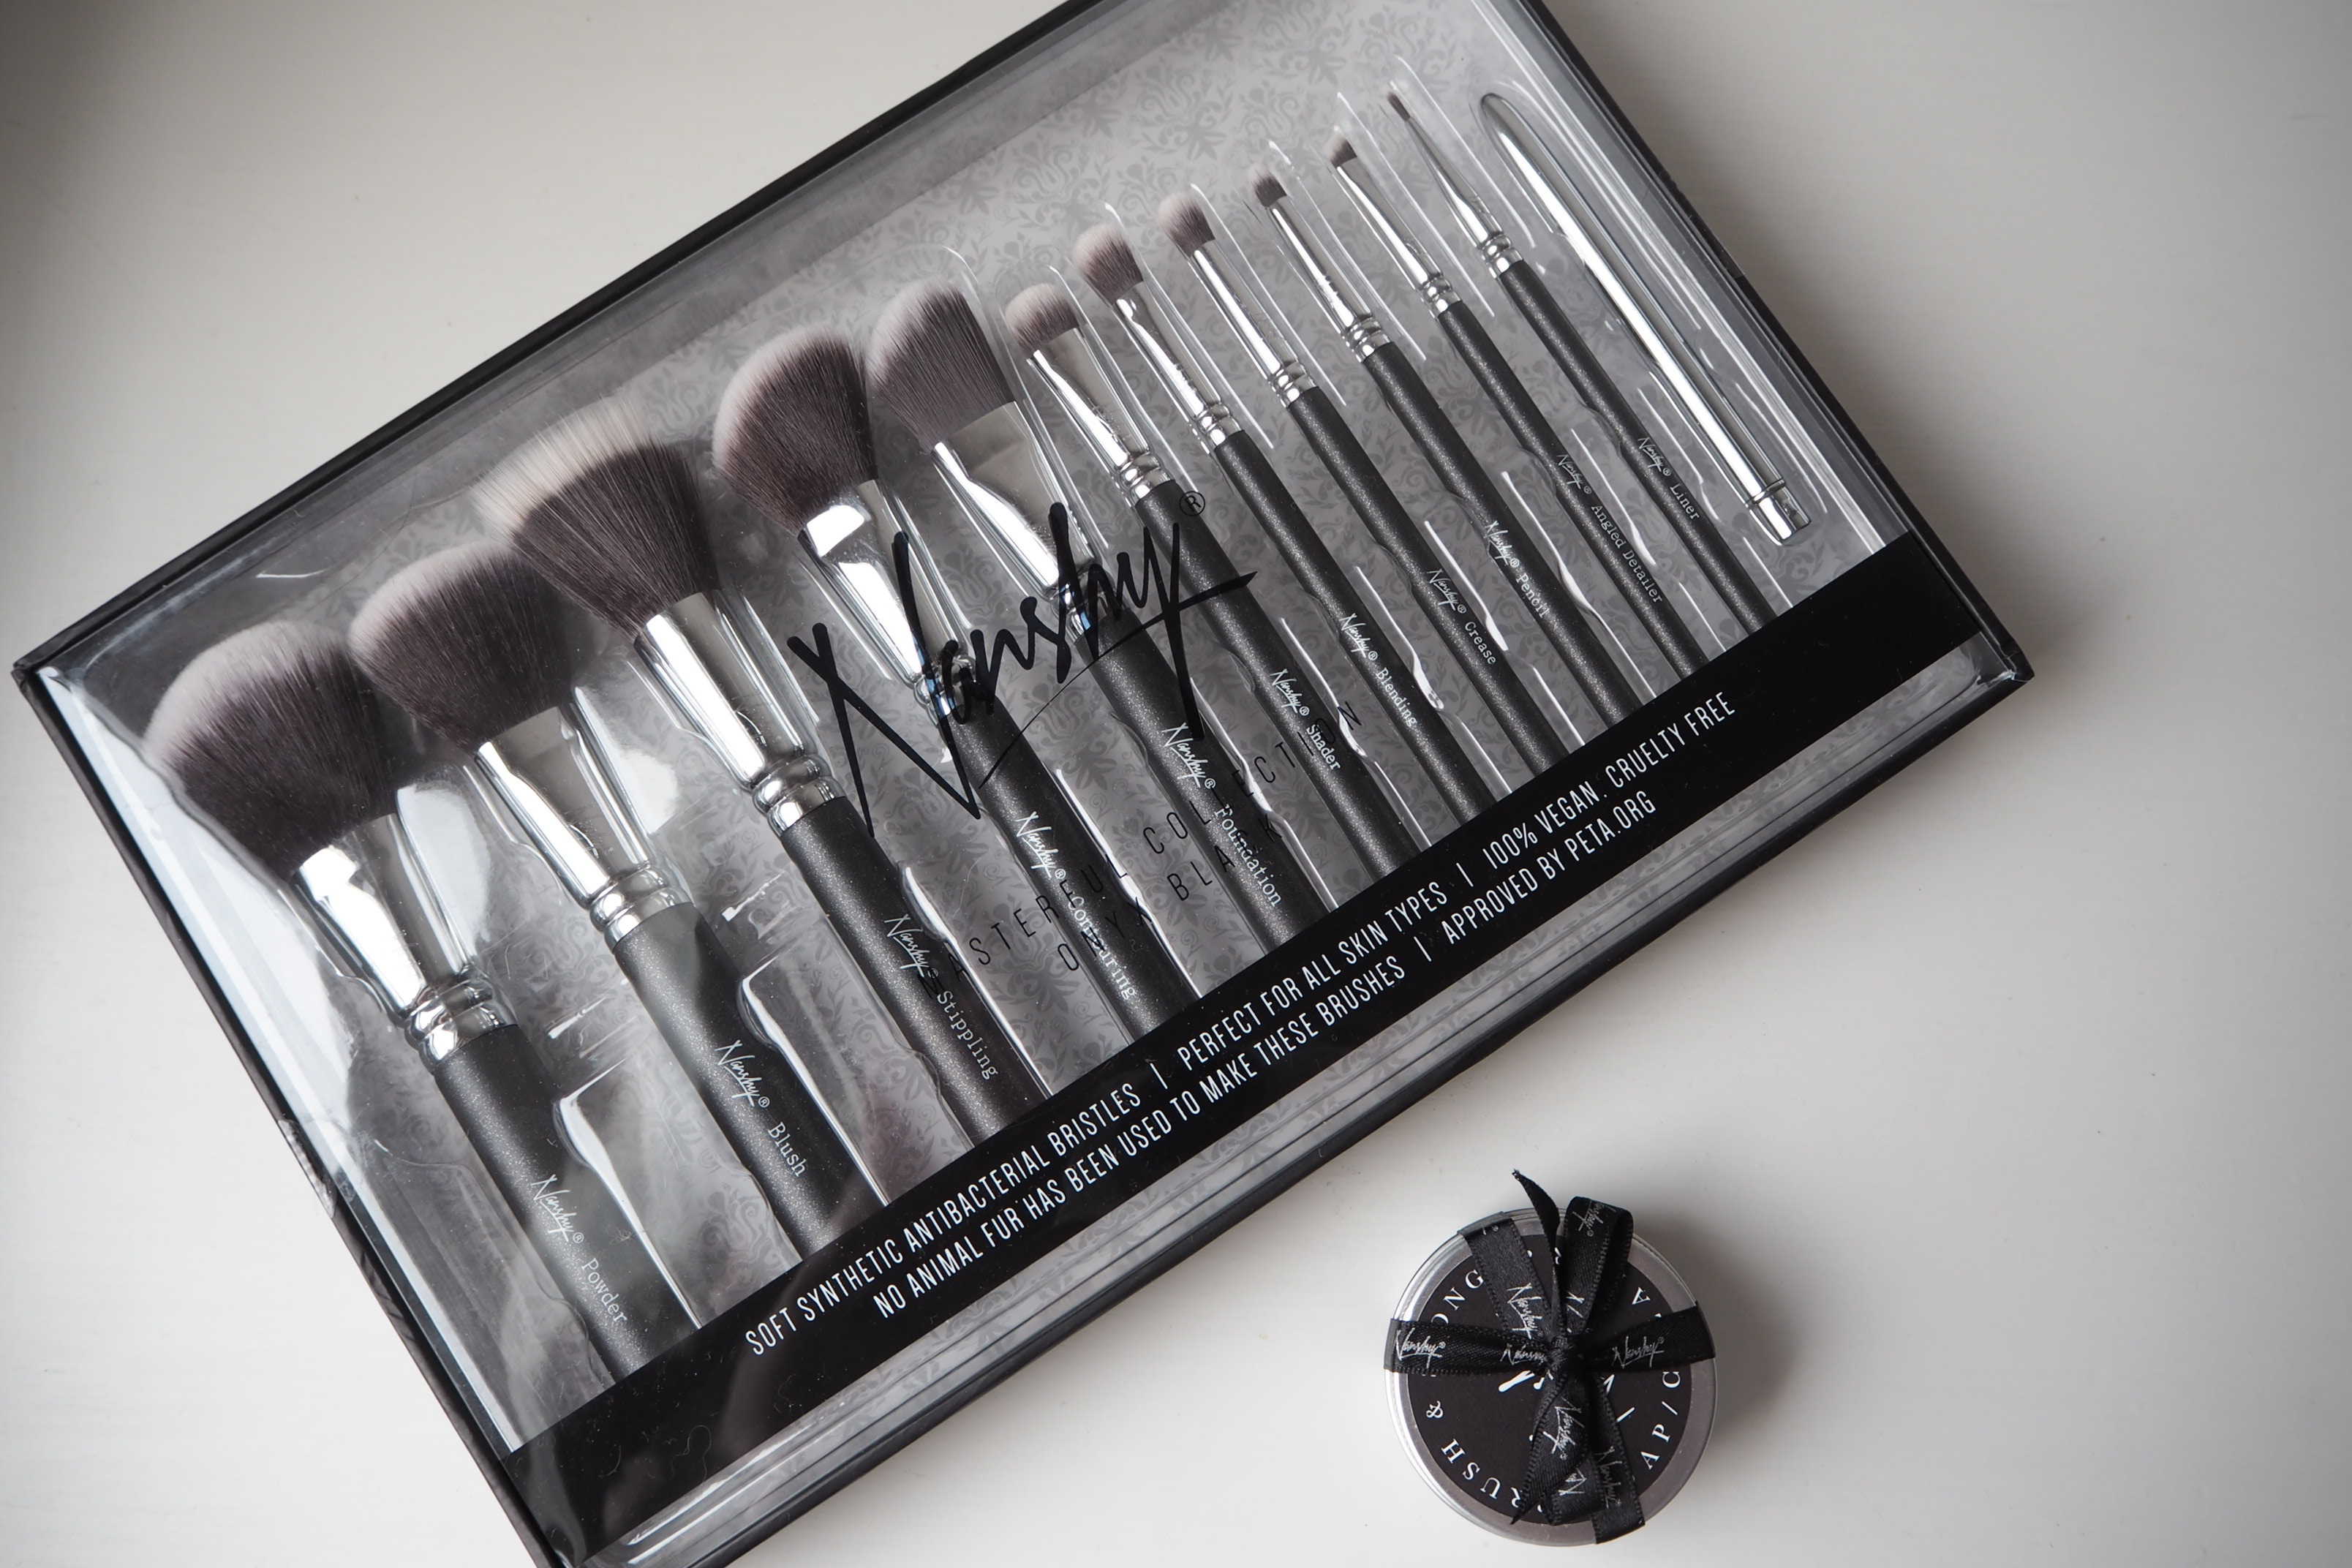 Nanshy Masterful Brush Collection and Brush & Sponge Cleaning Soap